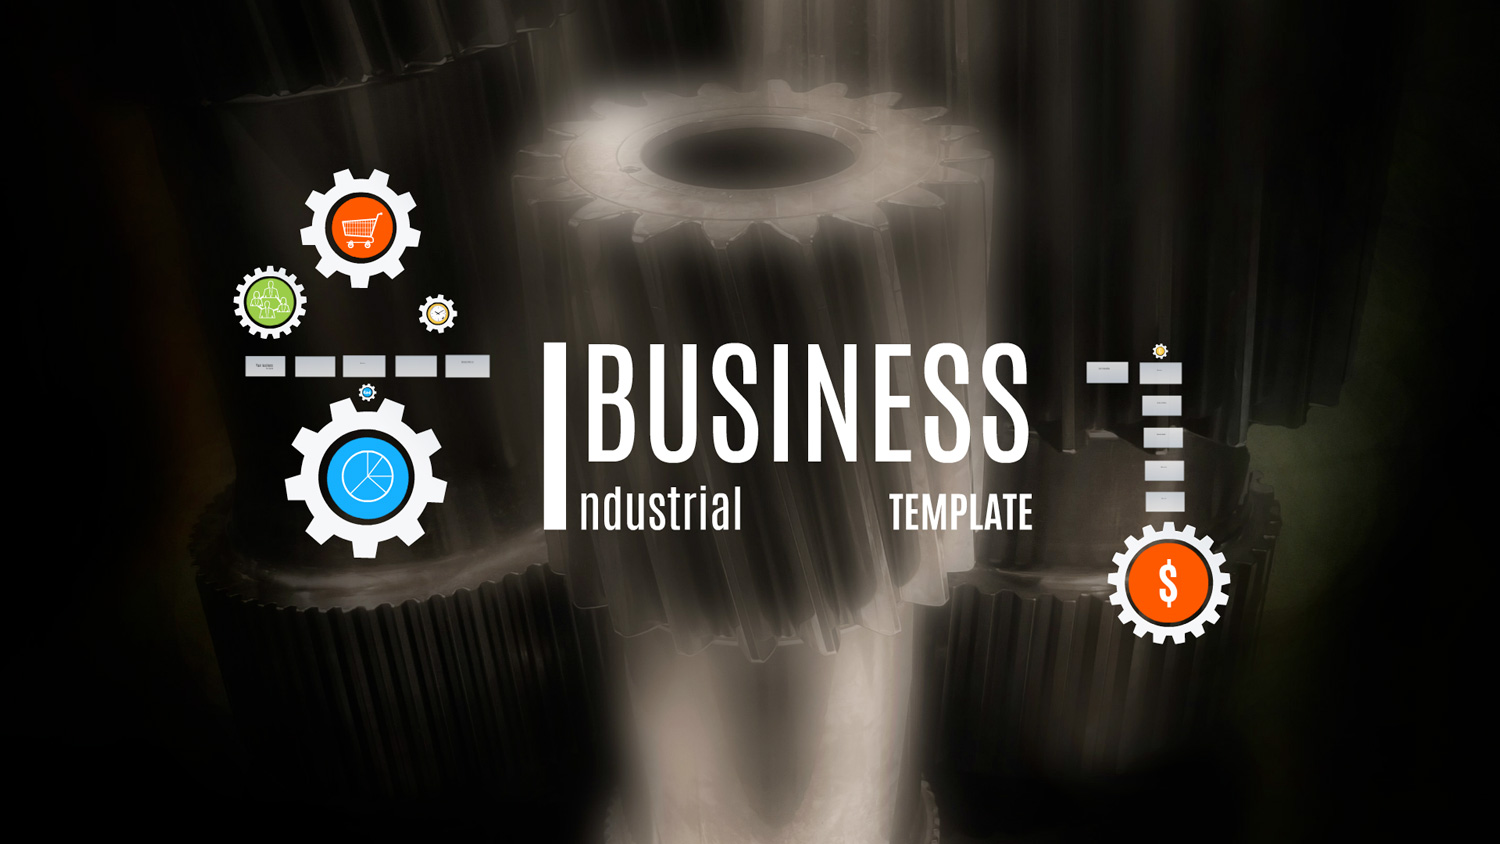 Industrial Business - Prezi templateIndustrial Business - Prezi template